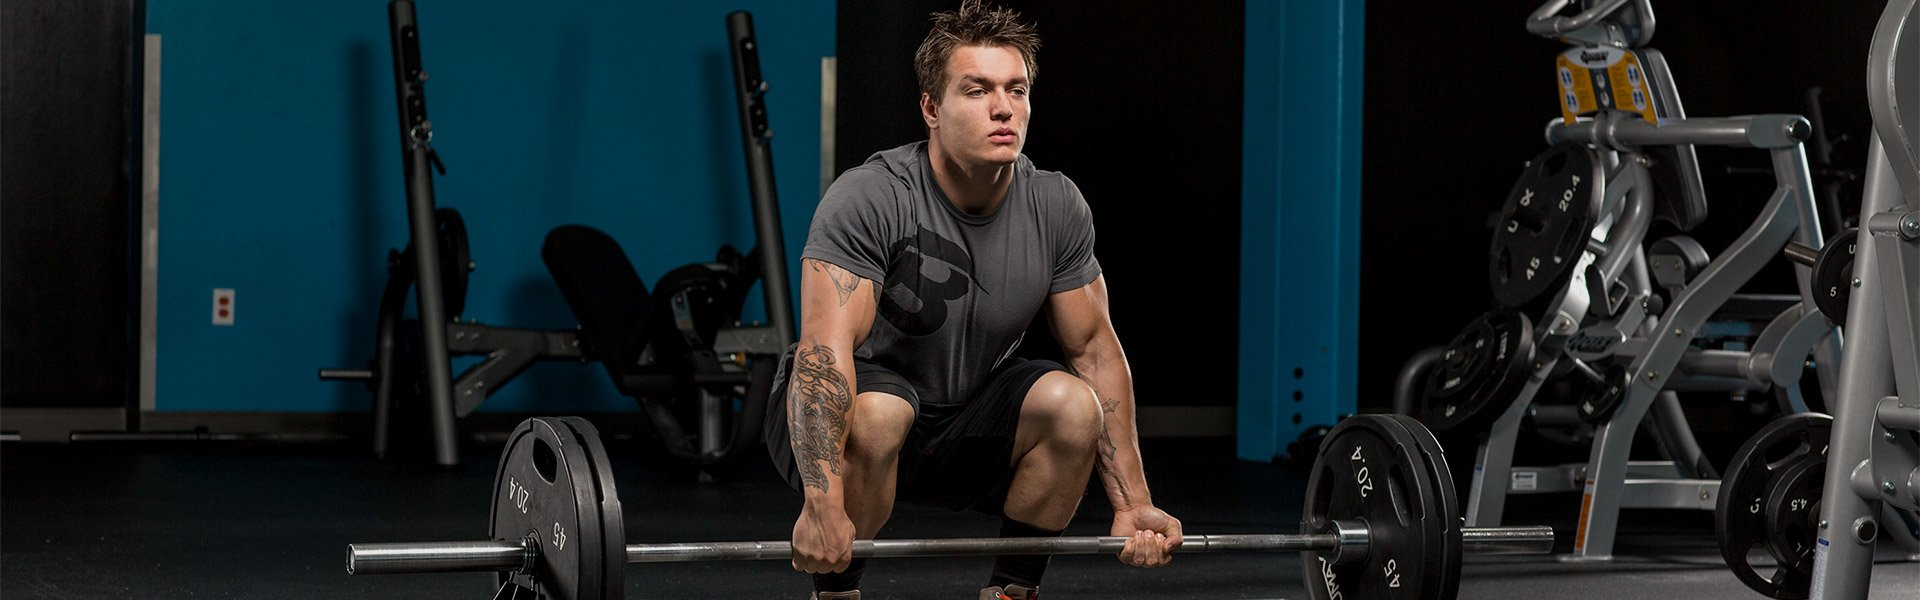 6 Common Deadlift Blunders That Aren\u0027t Commonly Talked About